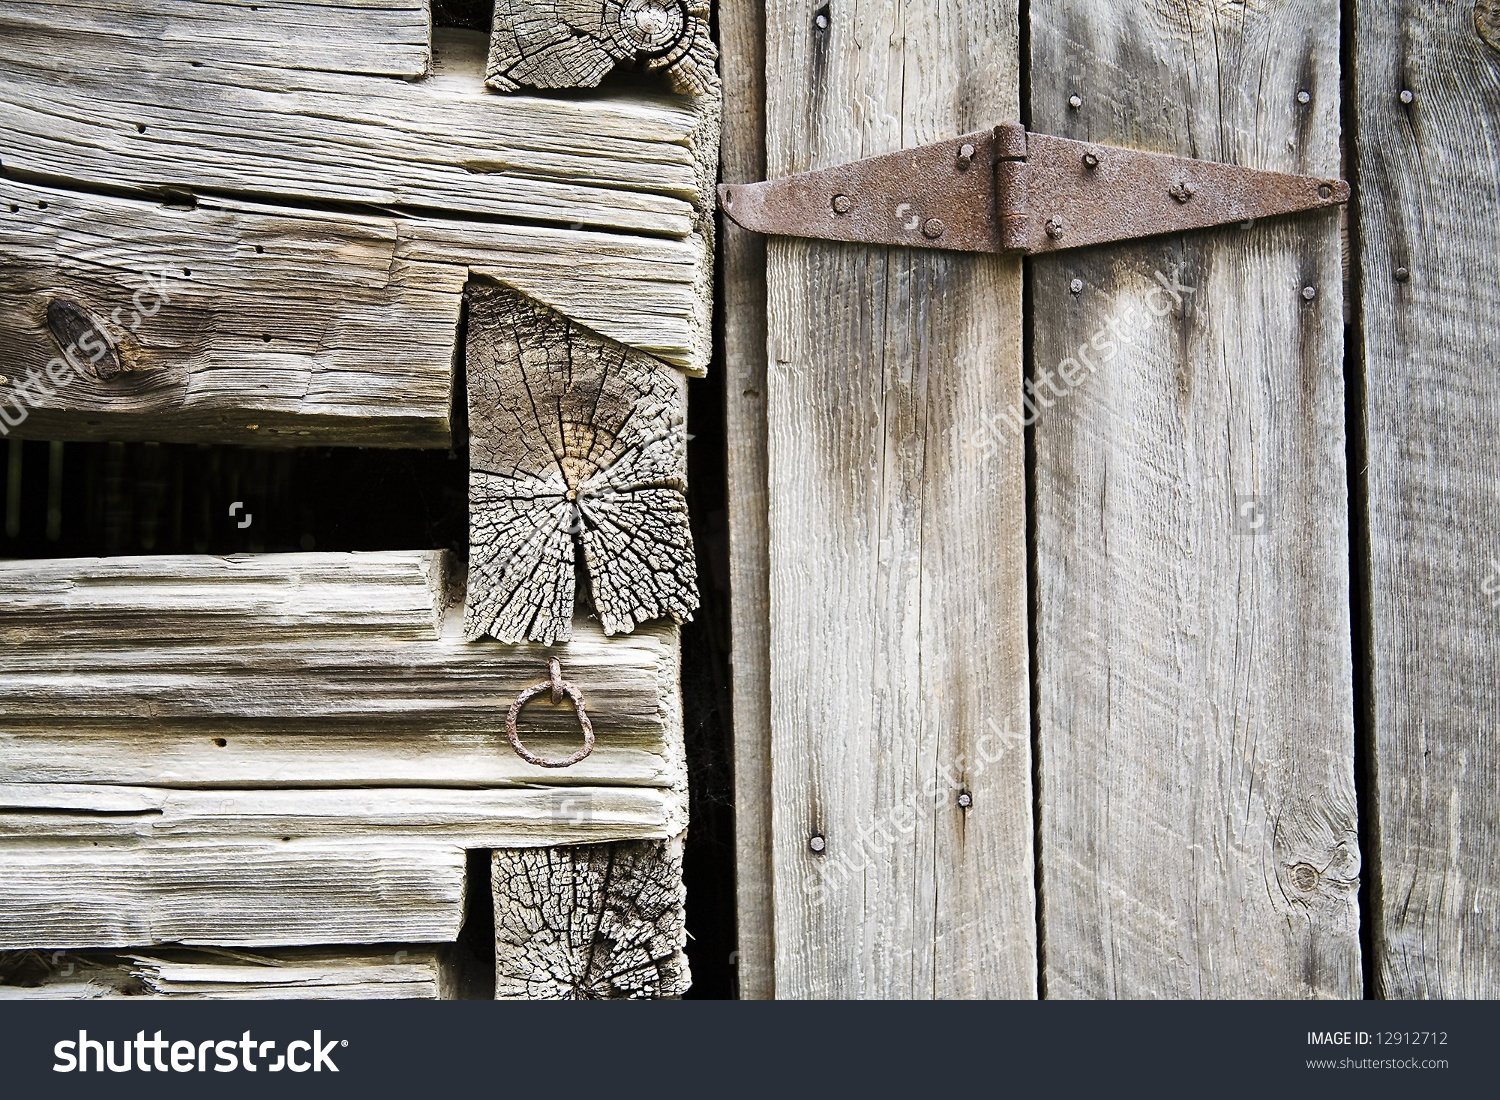 Dovetail Joint And Rusty Hinge In A Beam In An Old Barn In.